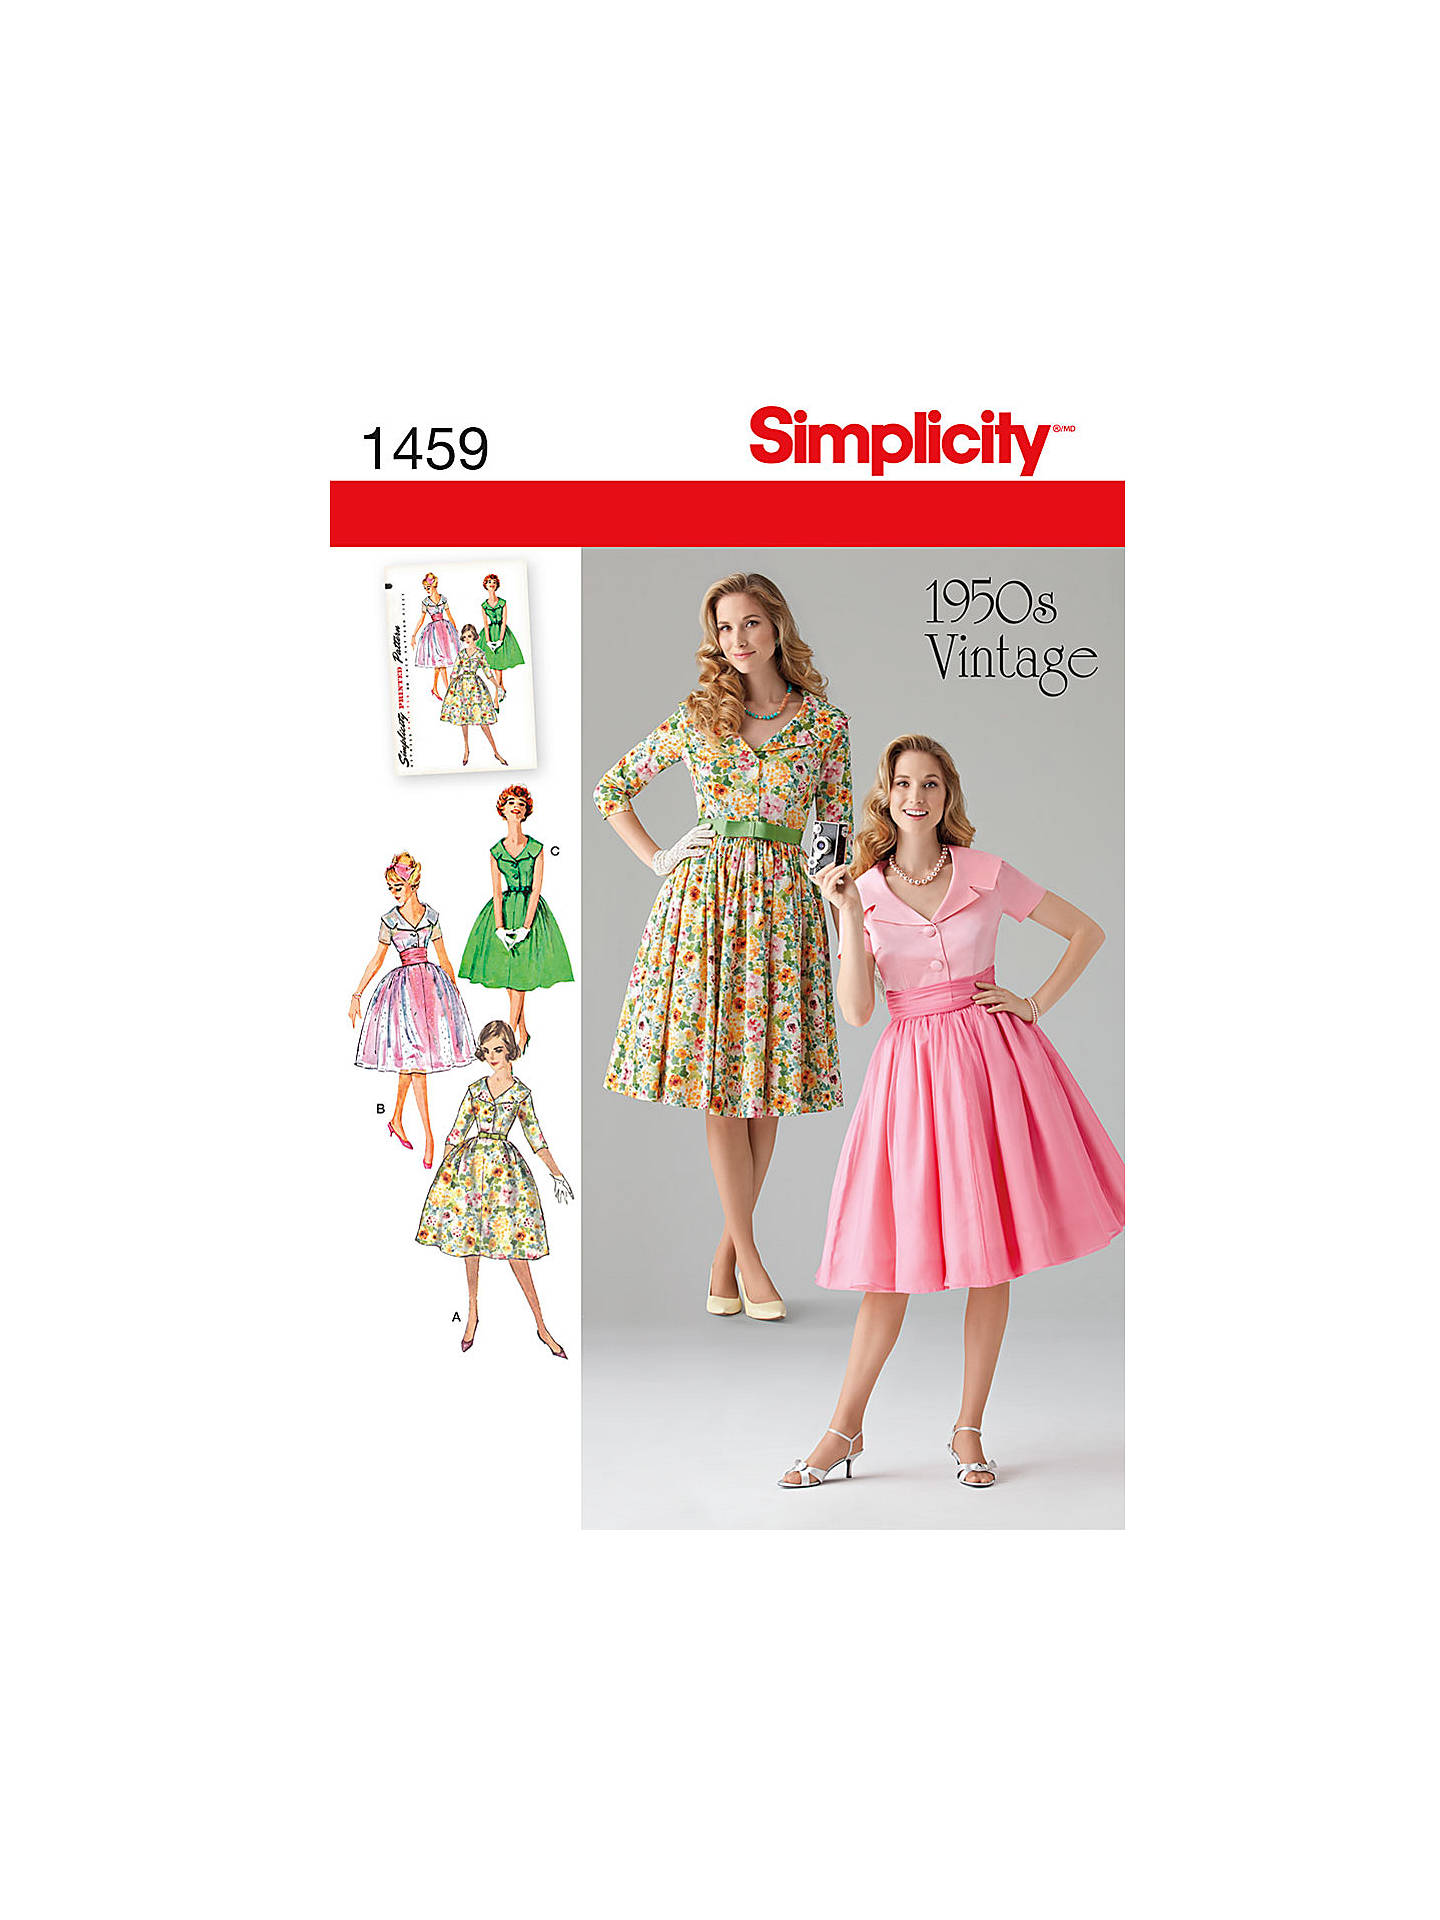 Simplicity 1950s Vintage Dresses Sewing Pattern 1459 At